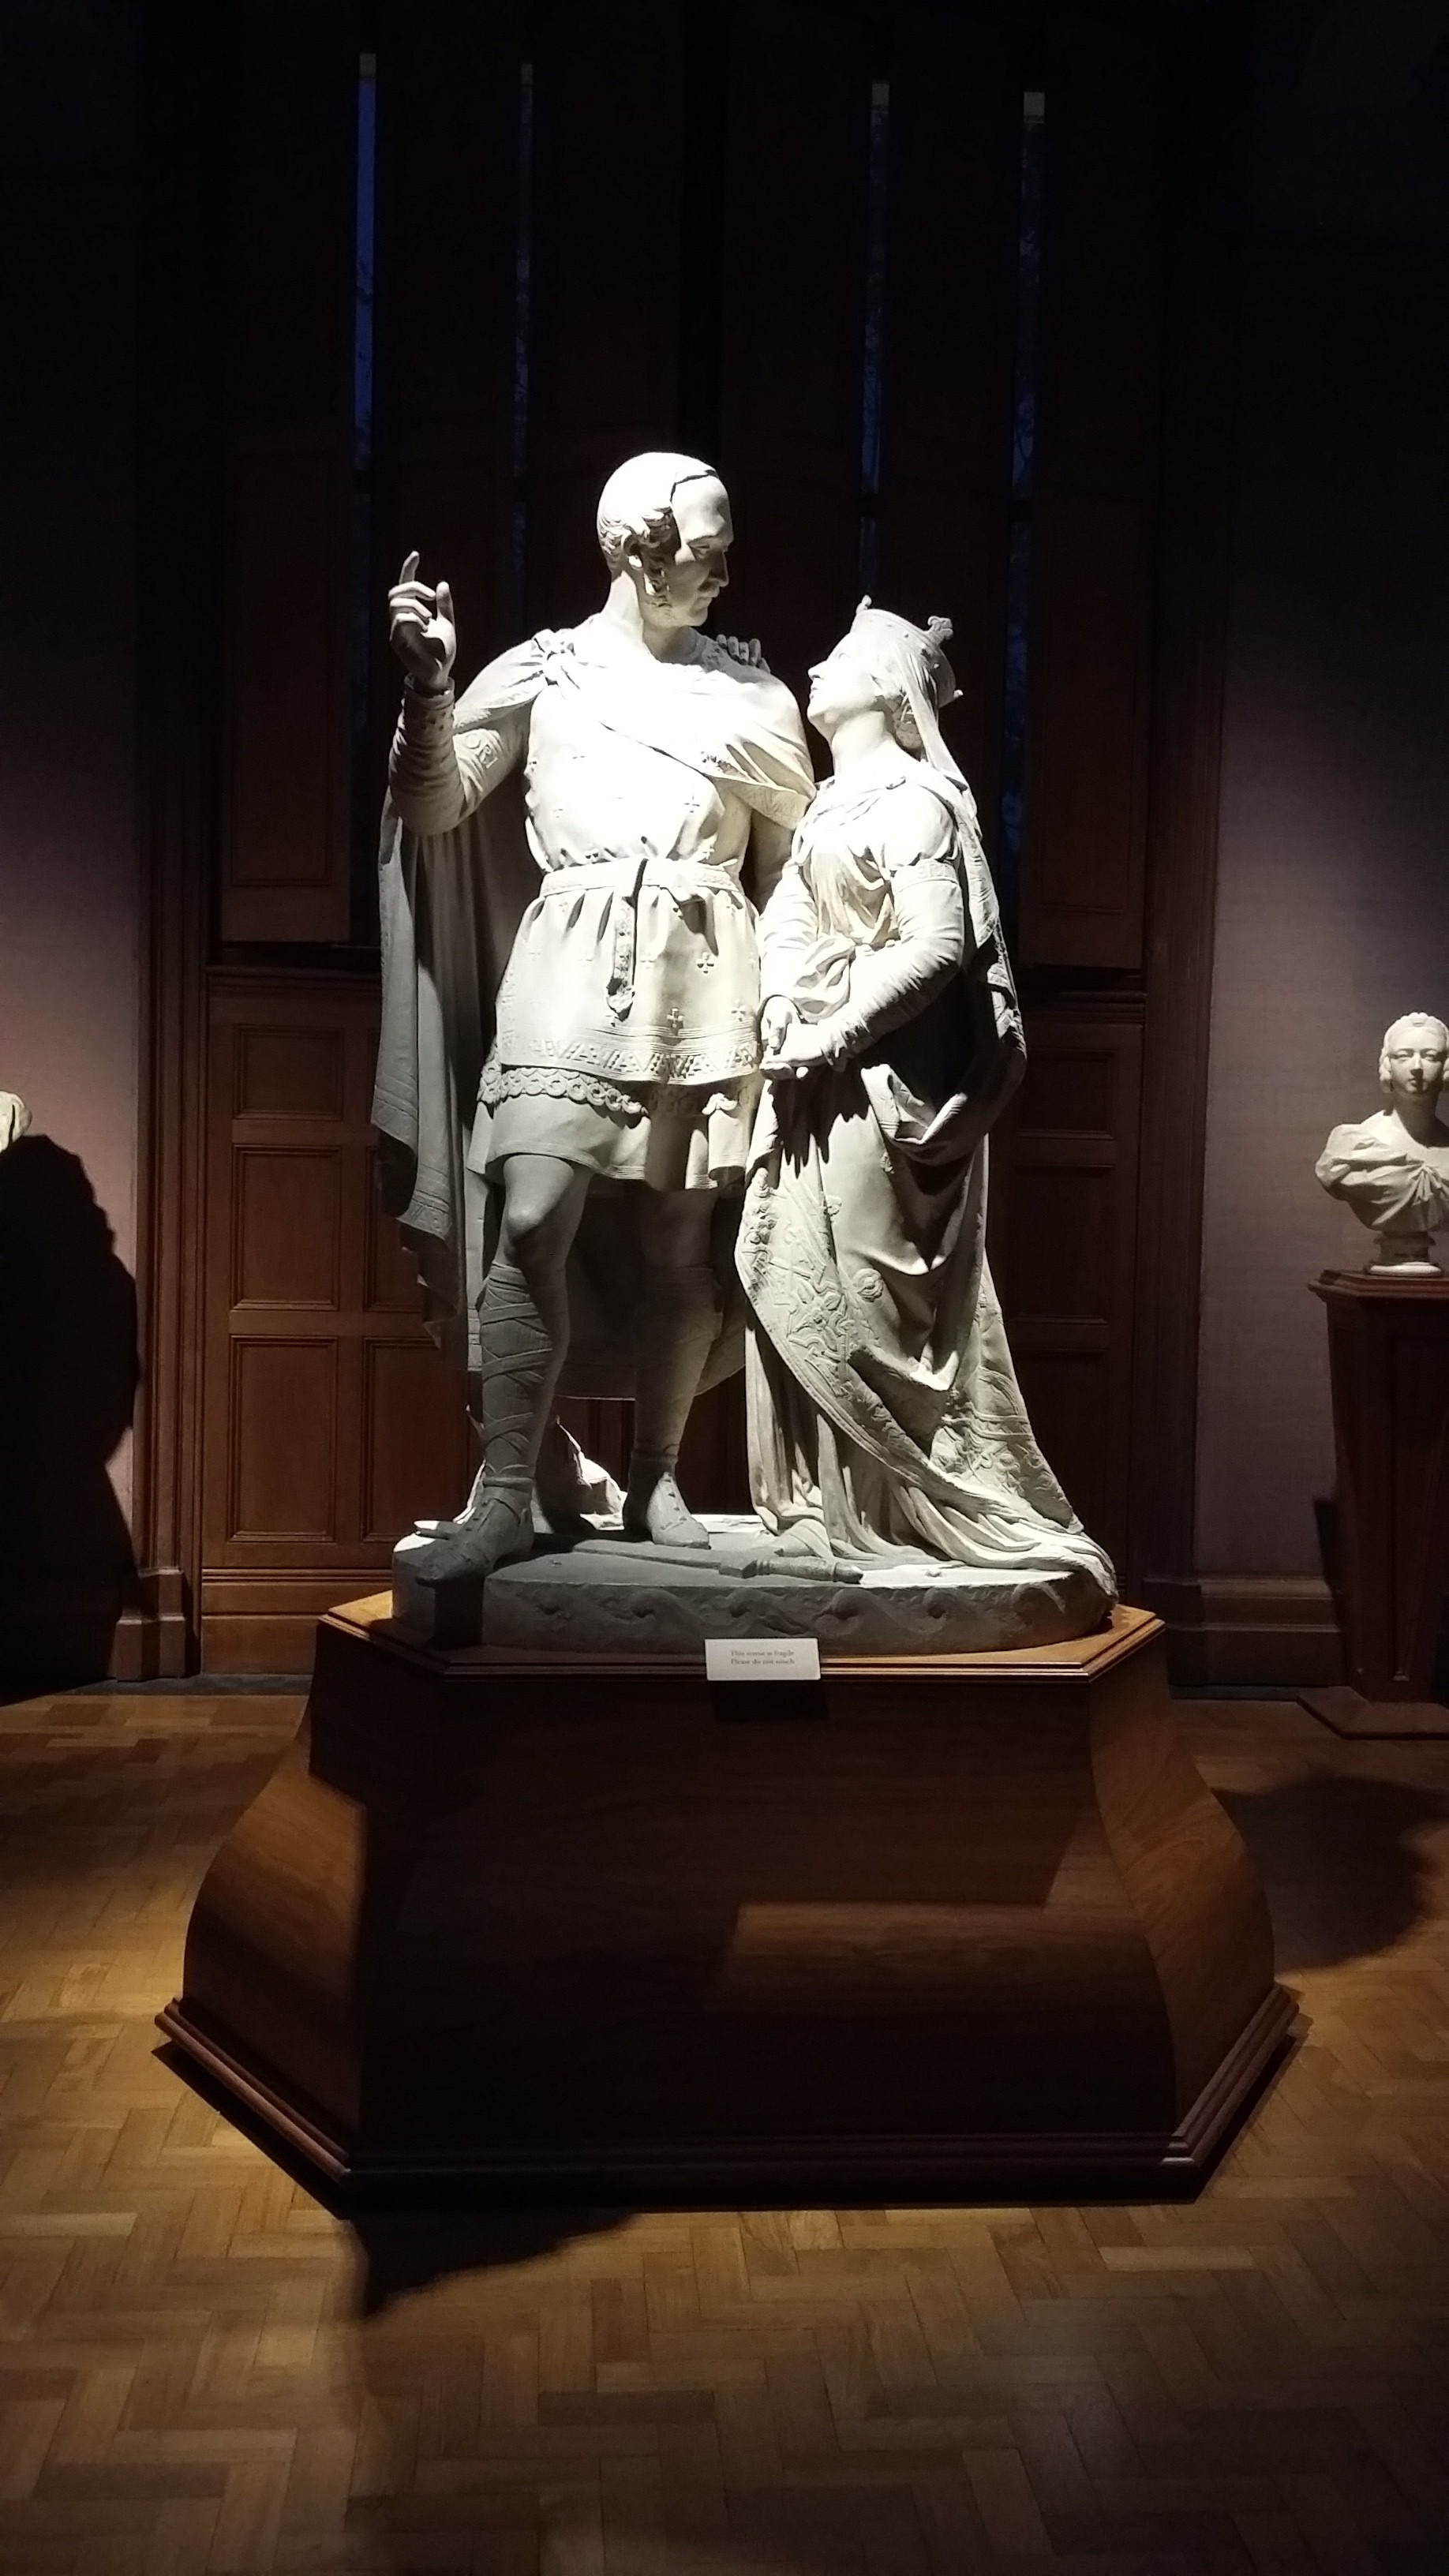 Statue of Victoria and Albert